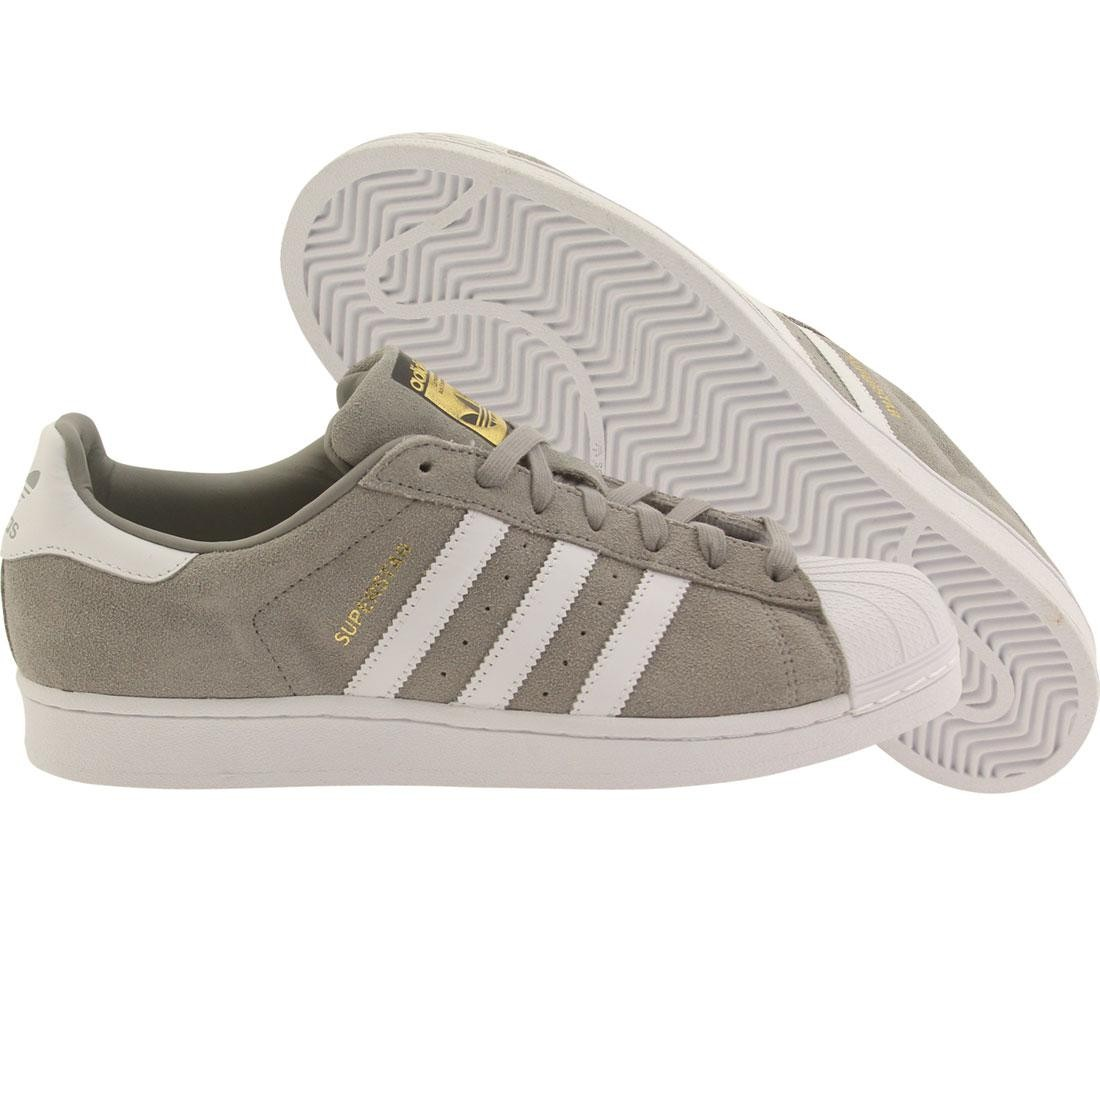 8760172cf7b454 Adidas Men Superstar Suede grey chsogr frtwwht